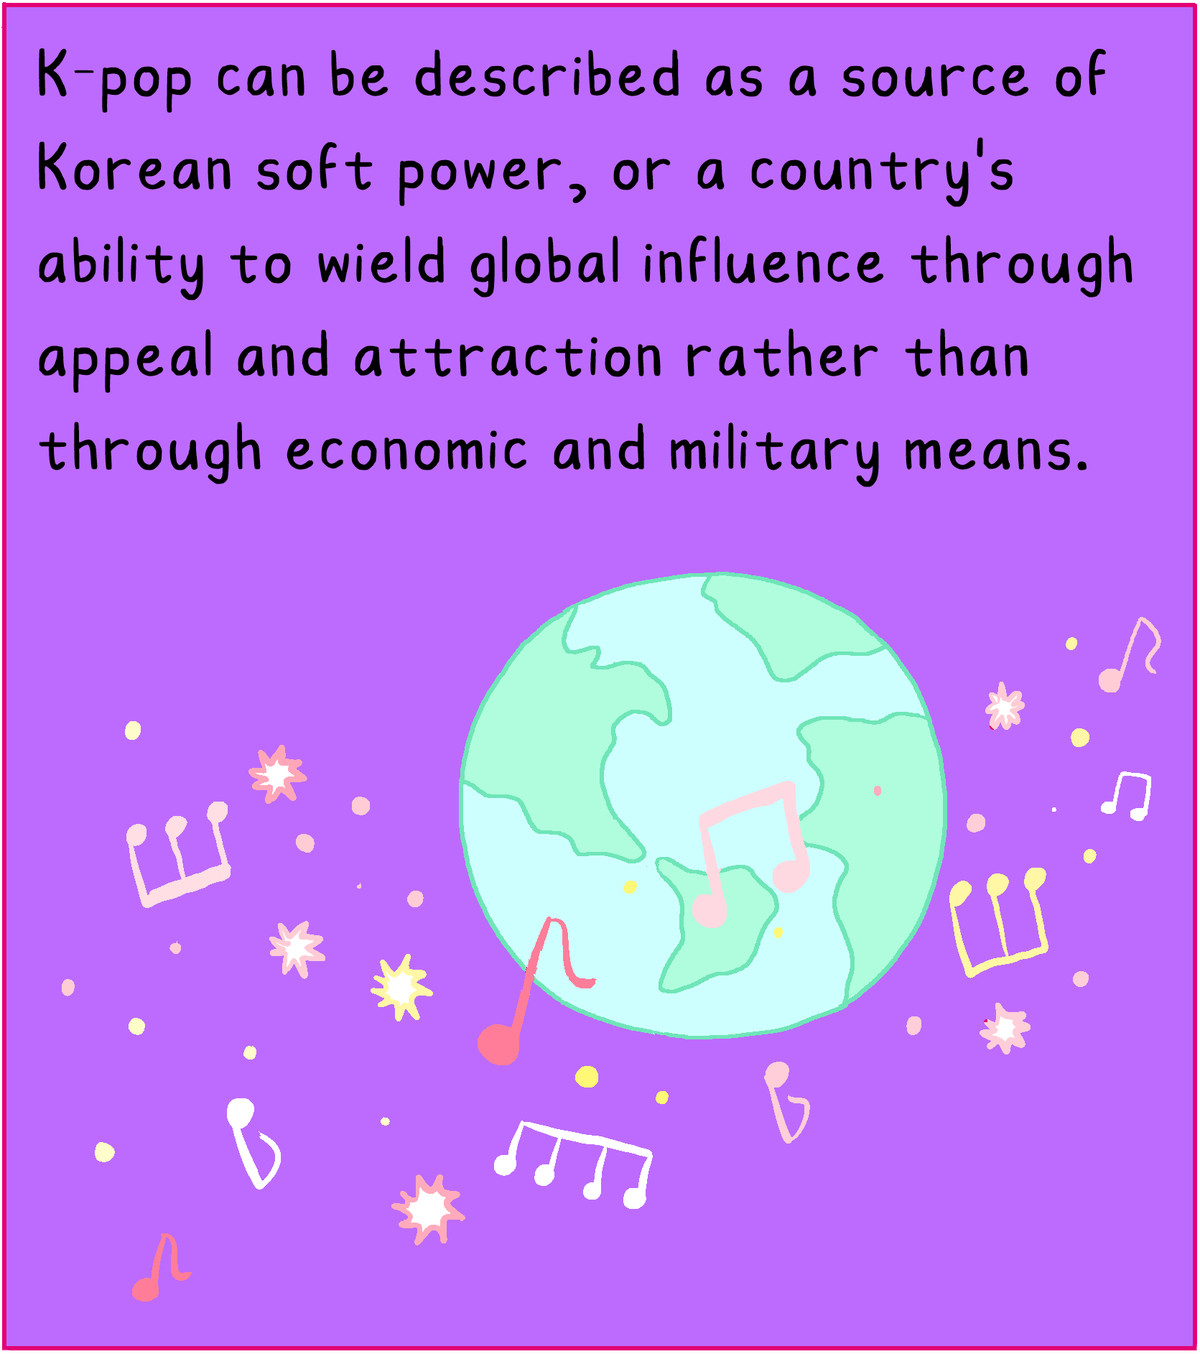 K-pop can be described as a source of Korean soft power, or a country's ability to wield global power through appeal and attraction rather than through economic and military means.